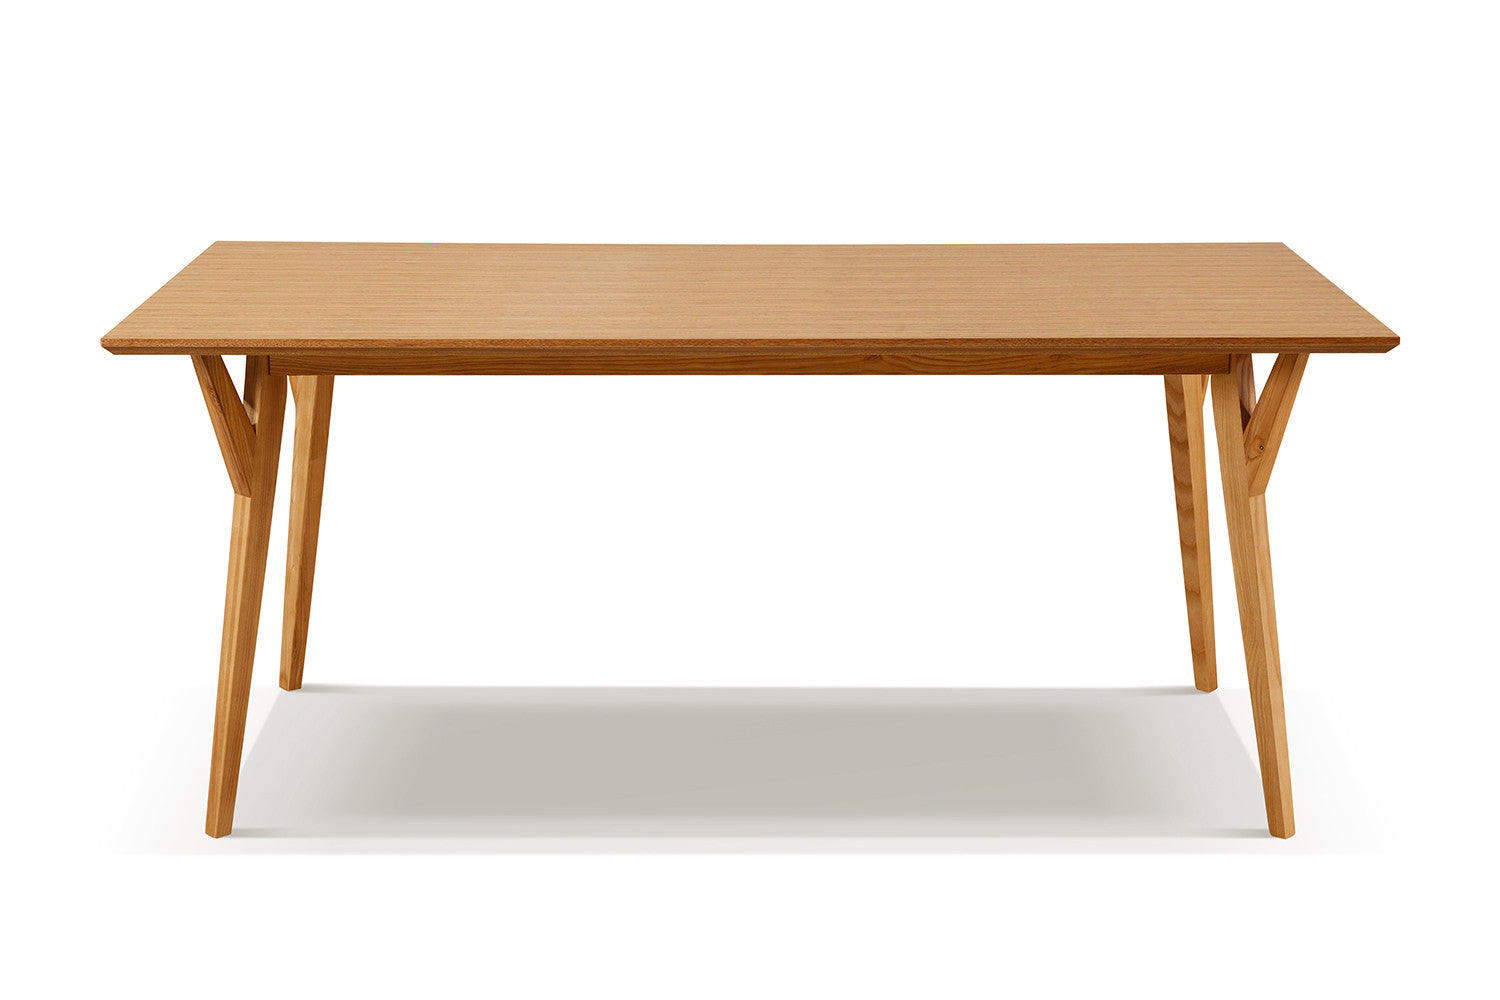 Table salle a manger scandinave for Table salle a manger pliable